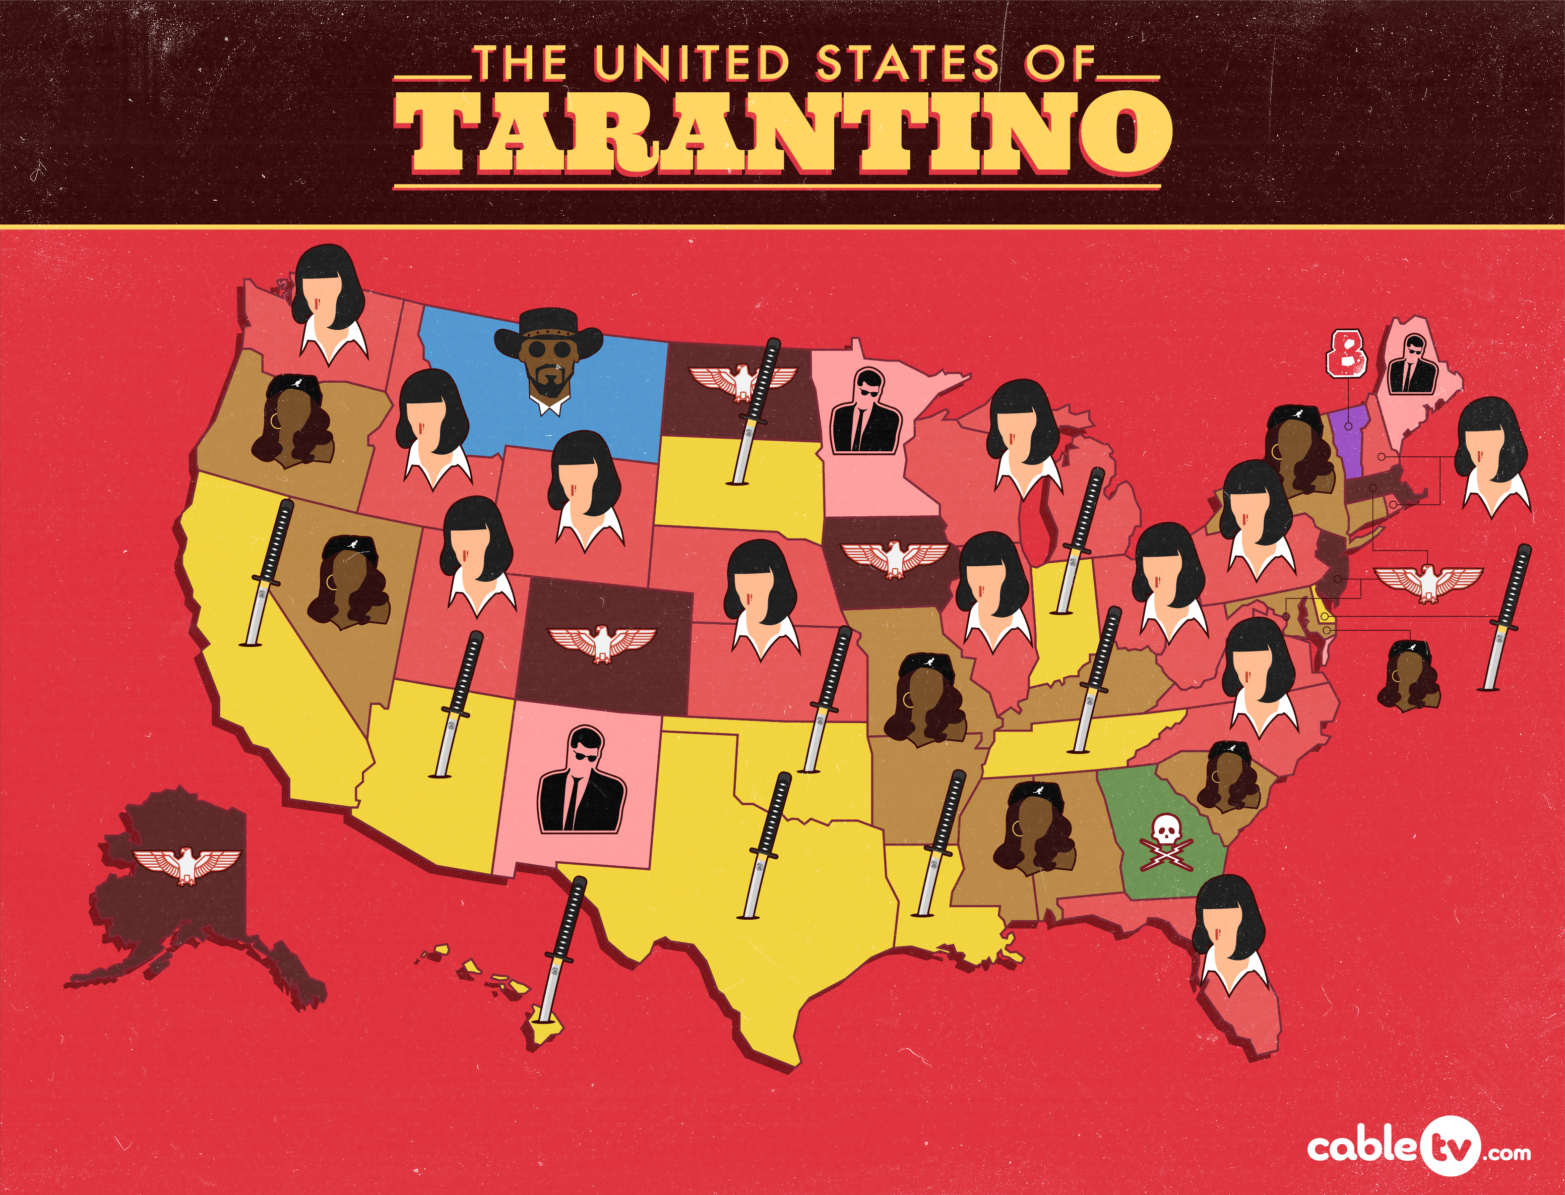 Your State's Favorite Tarantino Movie | CableTV.com on walt disney world state map, terre haute state map, i love ny state map, florida state map, tampa state map, naples state map, mesa verde state map, pensacola state map, california state map, philly state map, oakland state map, louisville state map, miami state map, baltimore state map, boston state map, tv show state map, anaheim state map, seattle state map, white house state map, orlando state map,